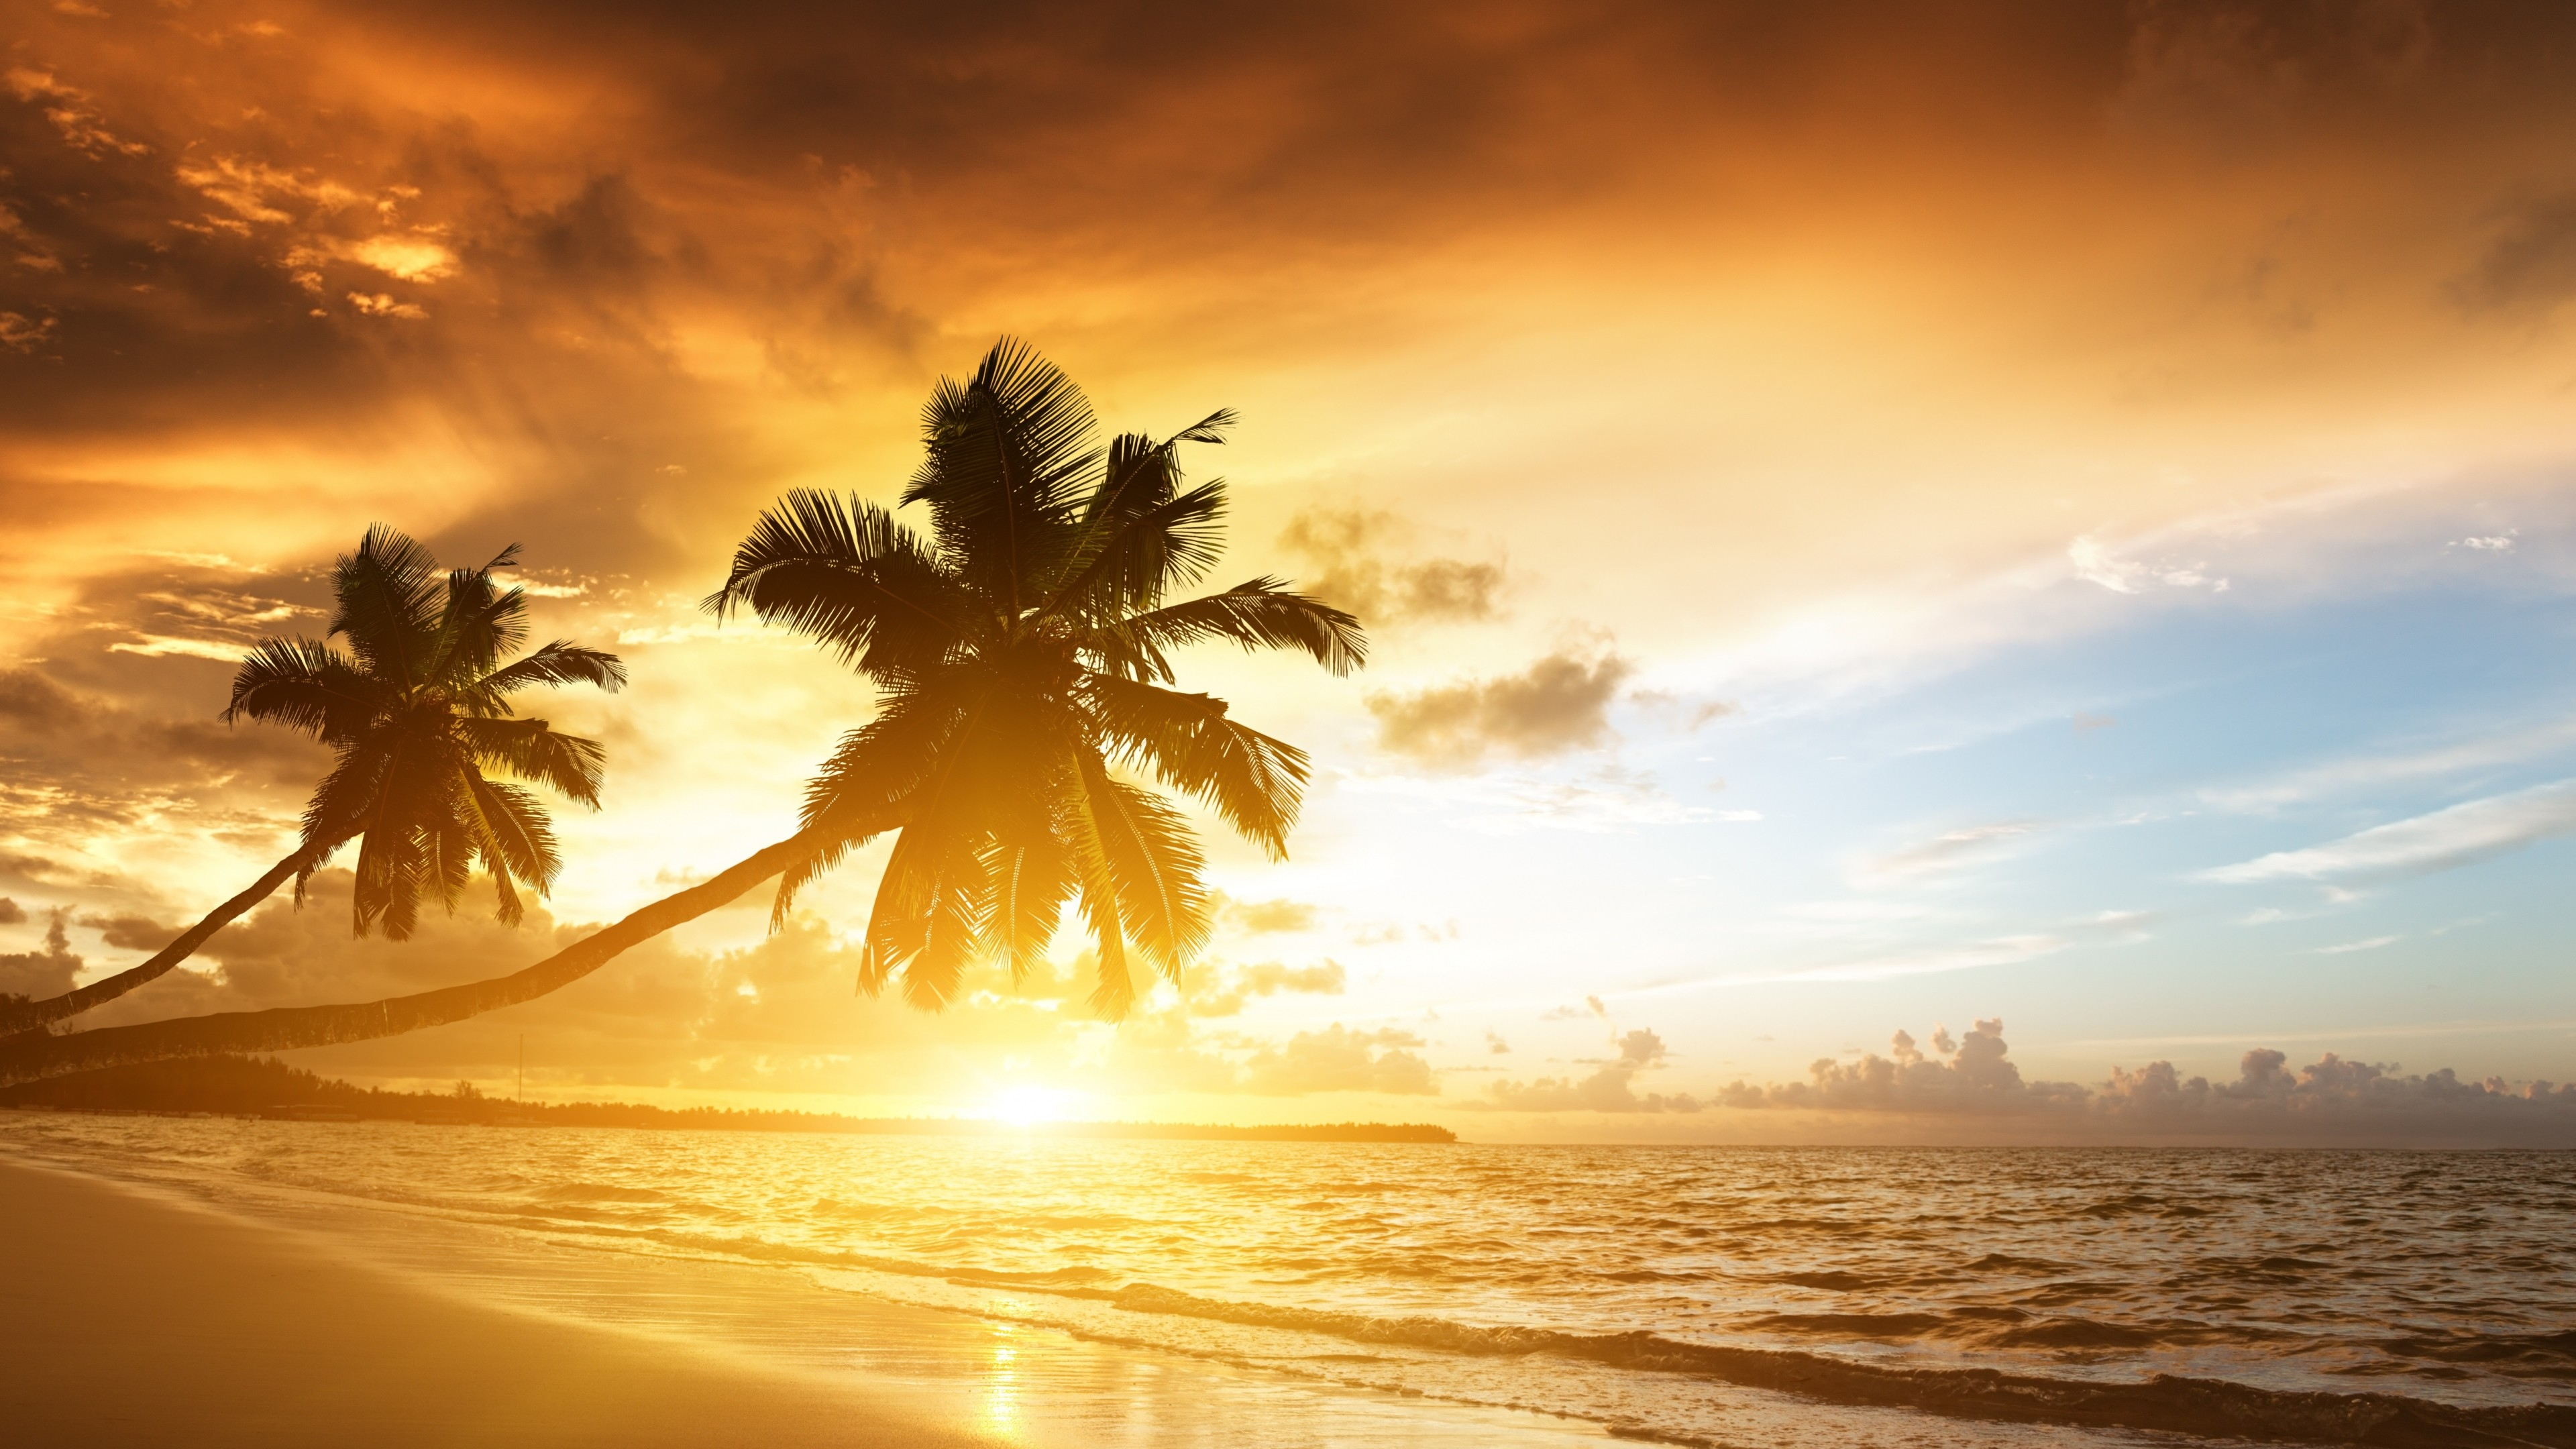 Preview wallpaper beach, tropics, sea, sand, palm trees, sunset, evening